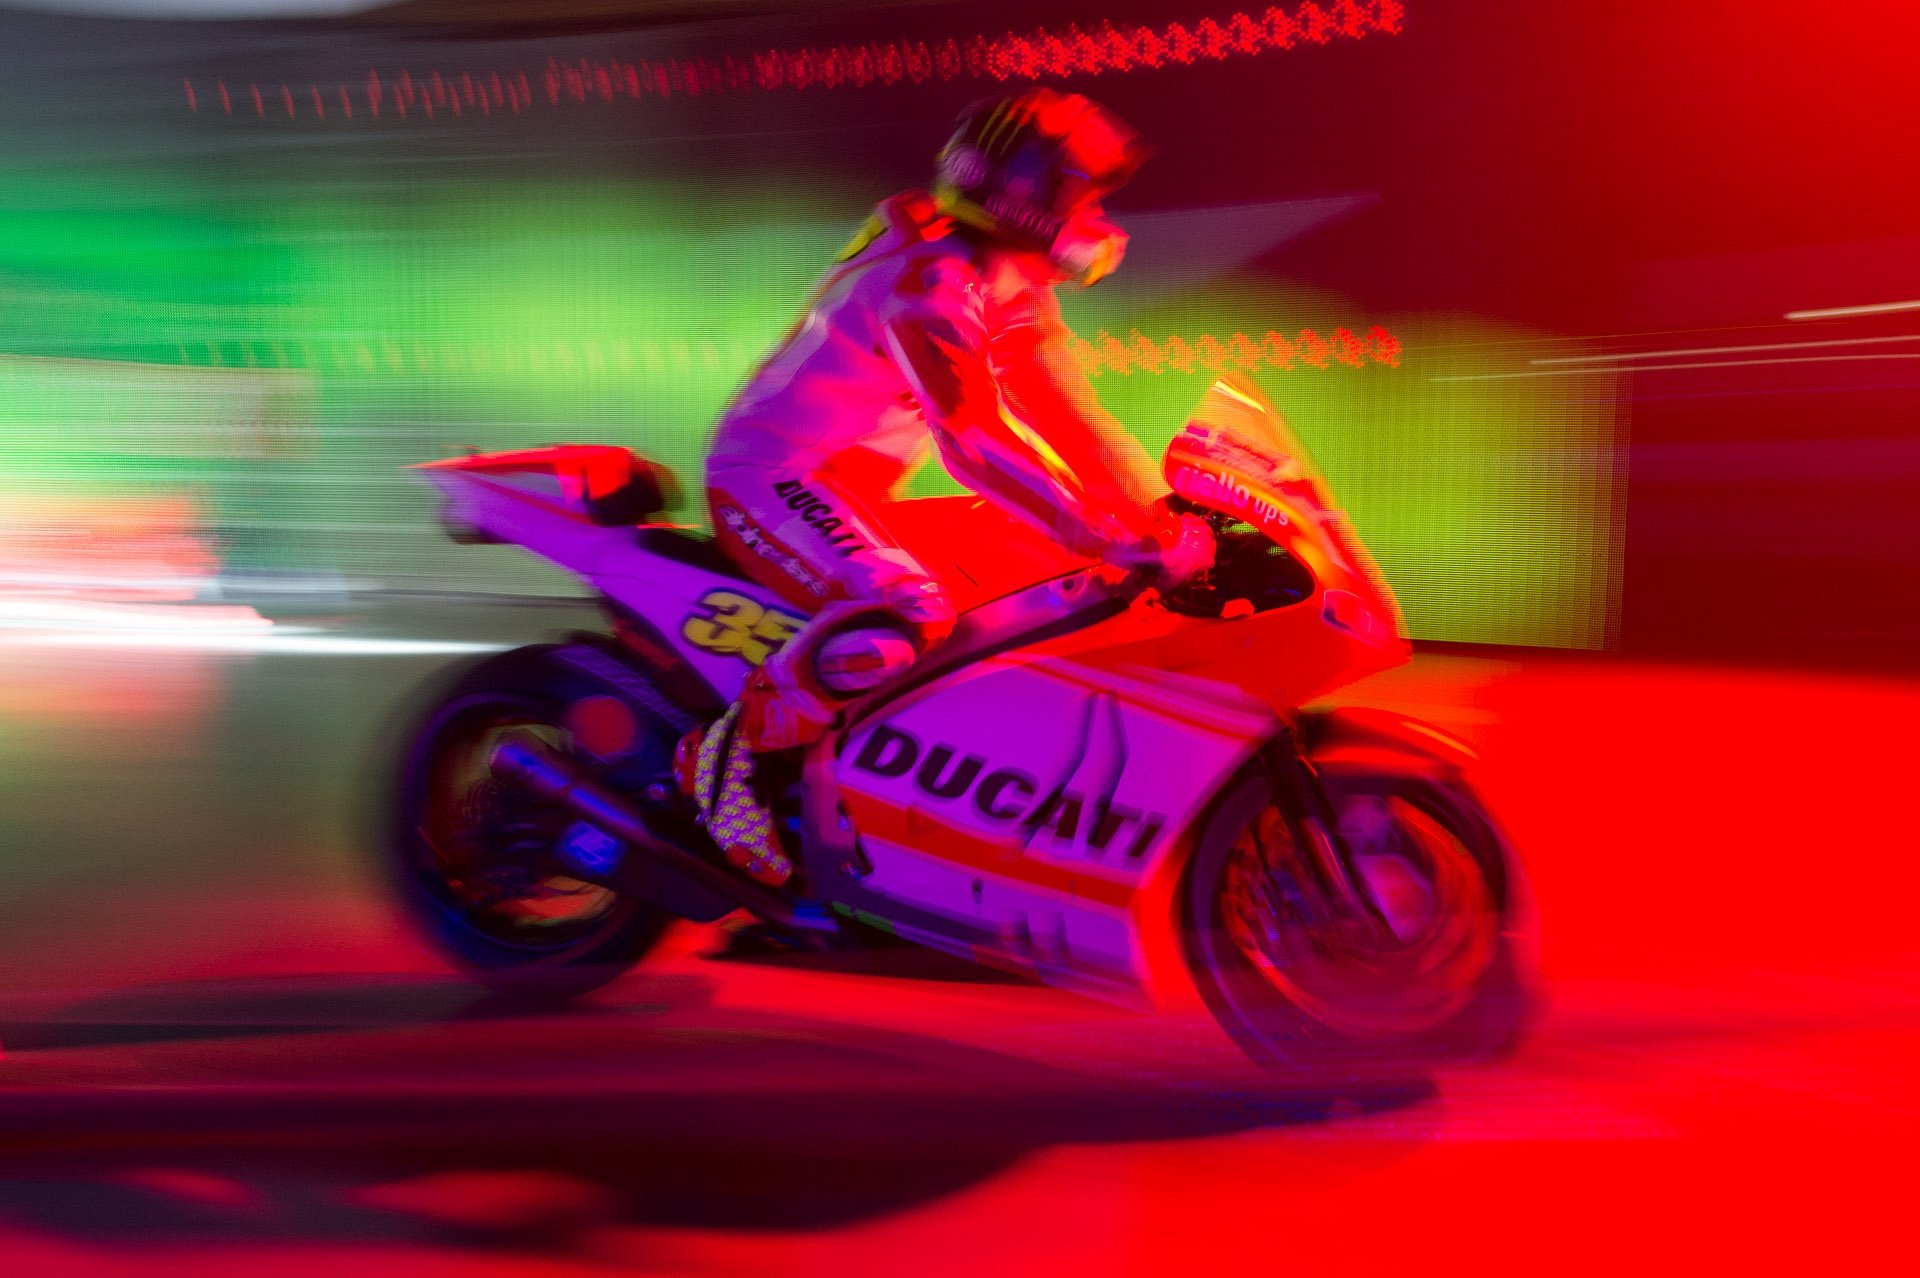 impressionen-audi-group-night-2014-audi-lamborghini-ducati-06